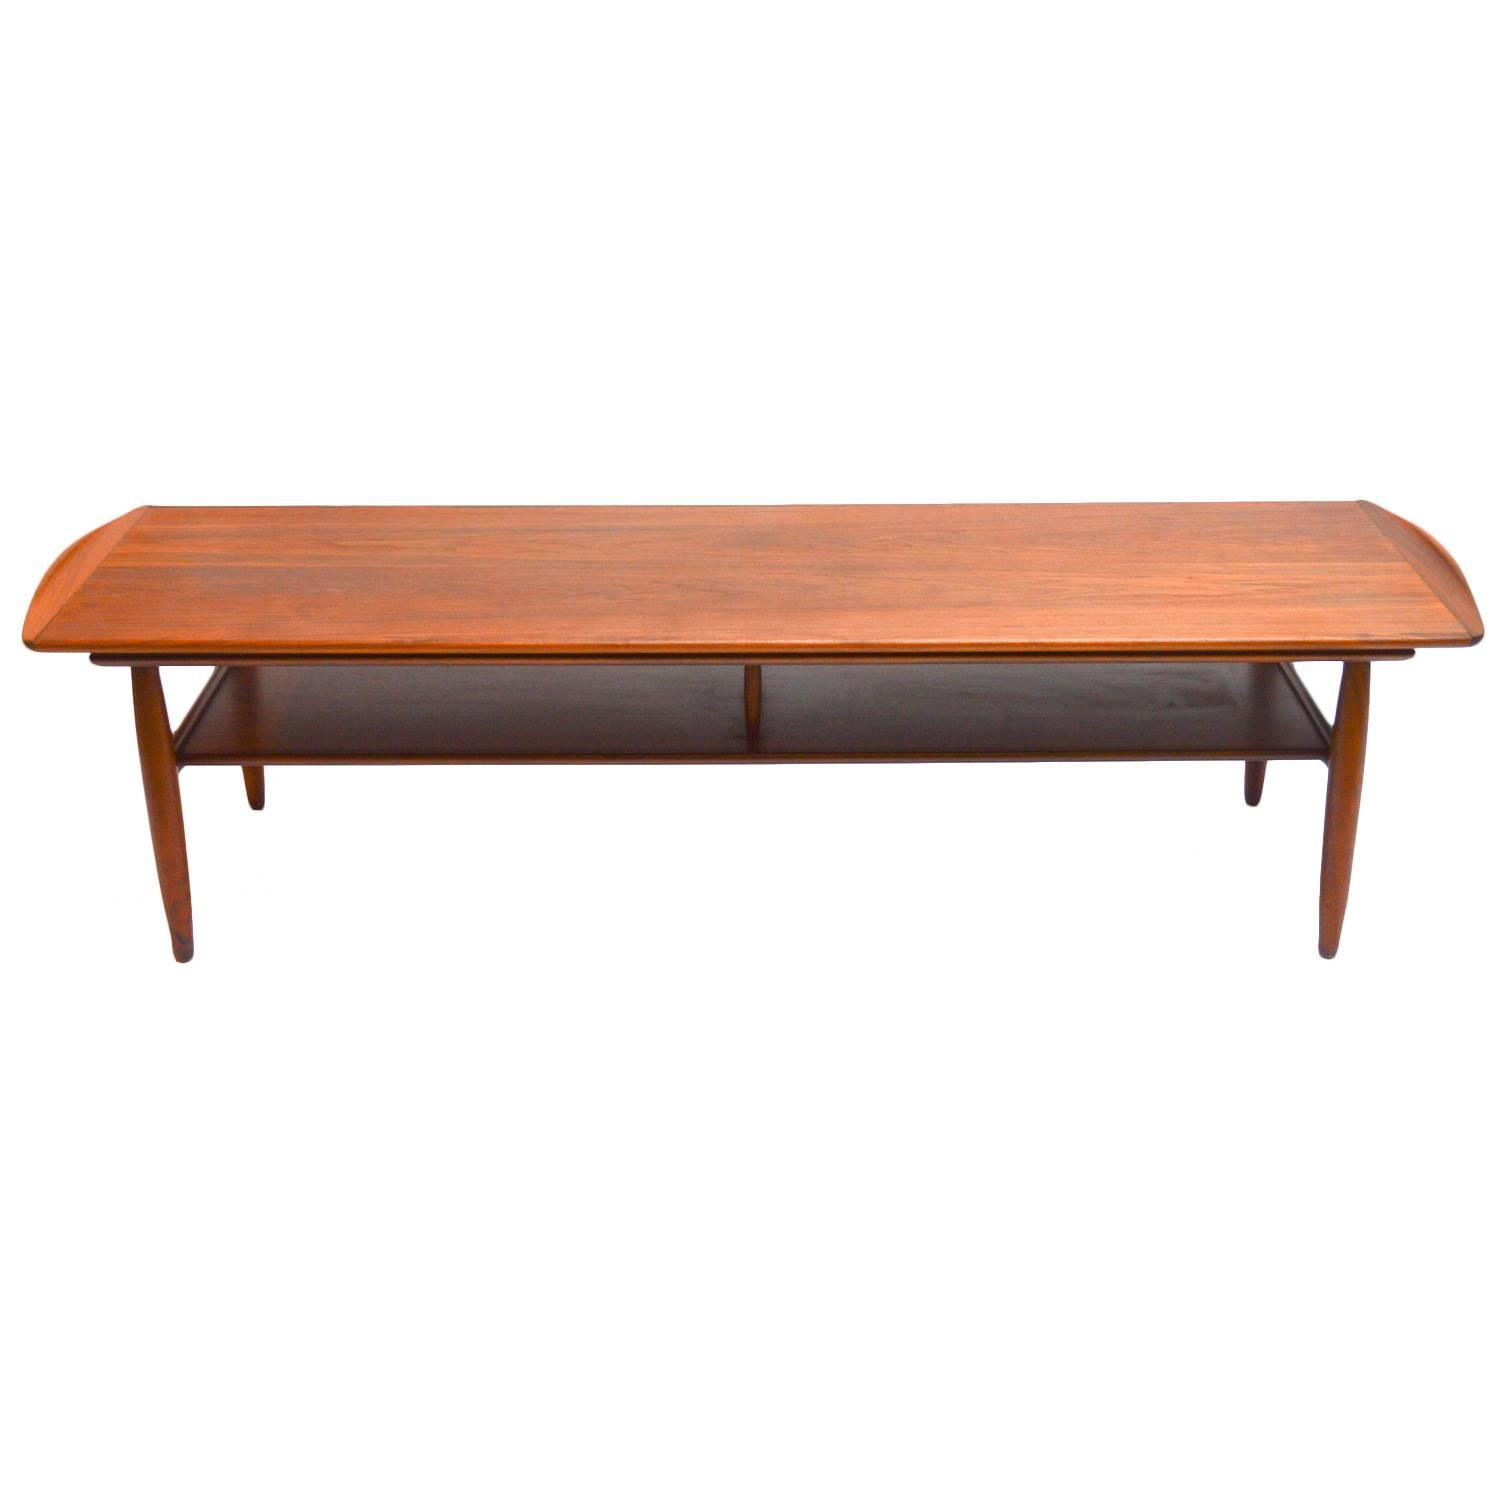 Mid century modern two tiered walnut coffee table at 1stdibs for Mid century modern coffee table